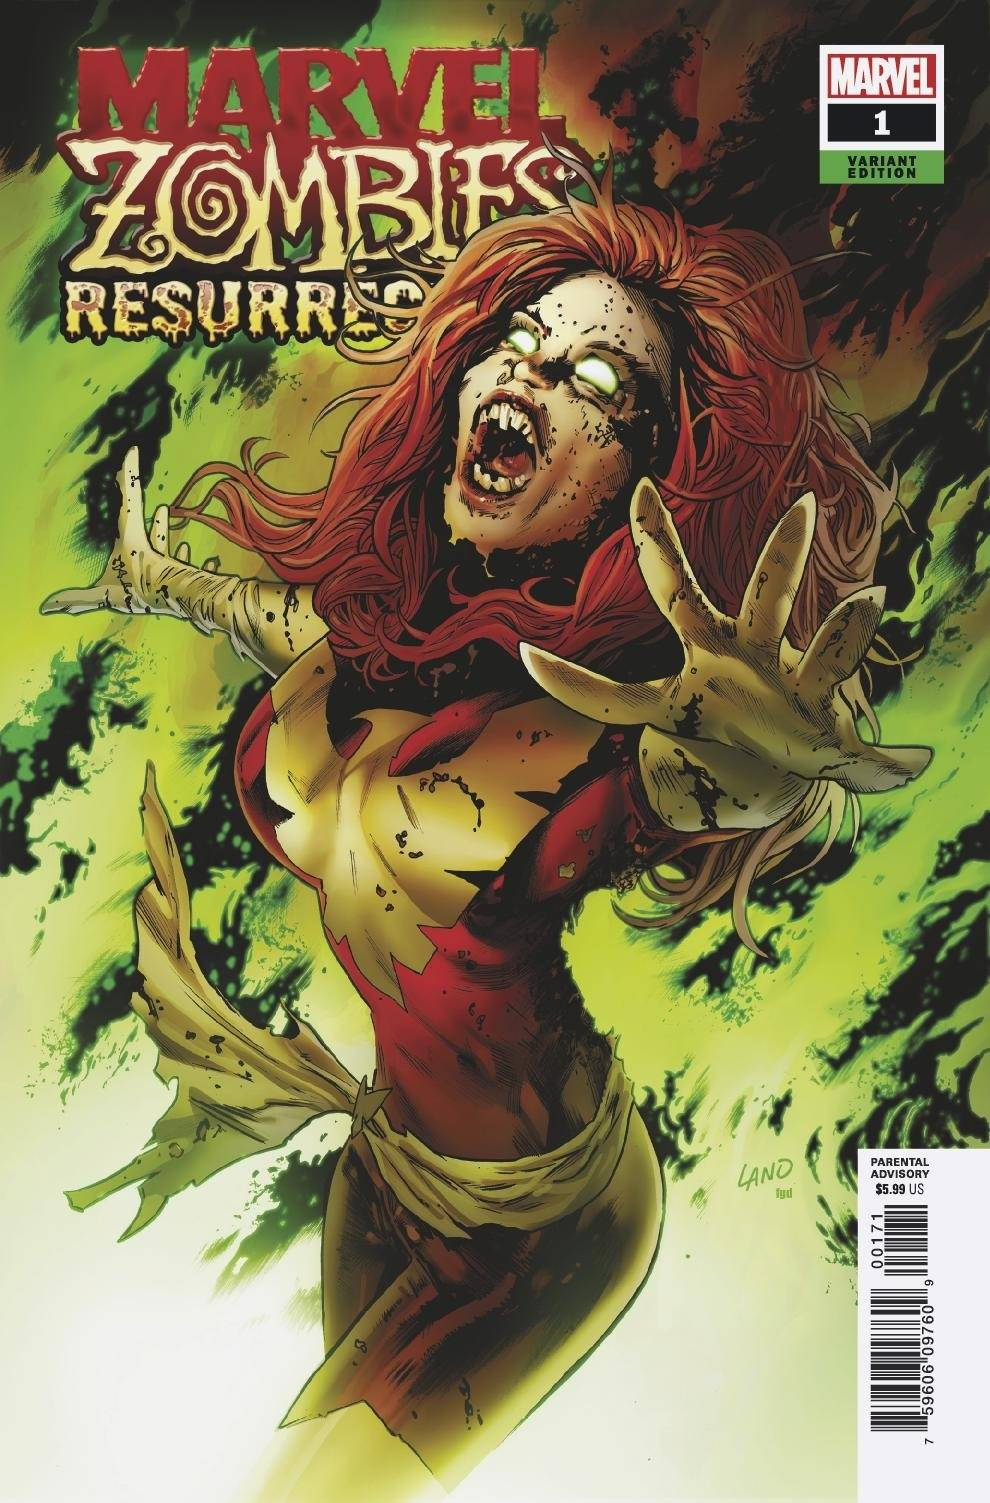 04/29/2020 MARVEL ZOMBIES RESURRECTION #1 (OF 4) LAND VARIANT (NEW RELEASE 09/02/2020)